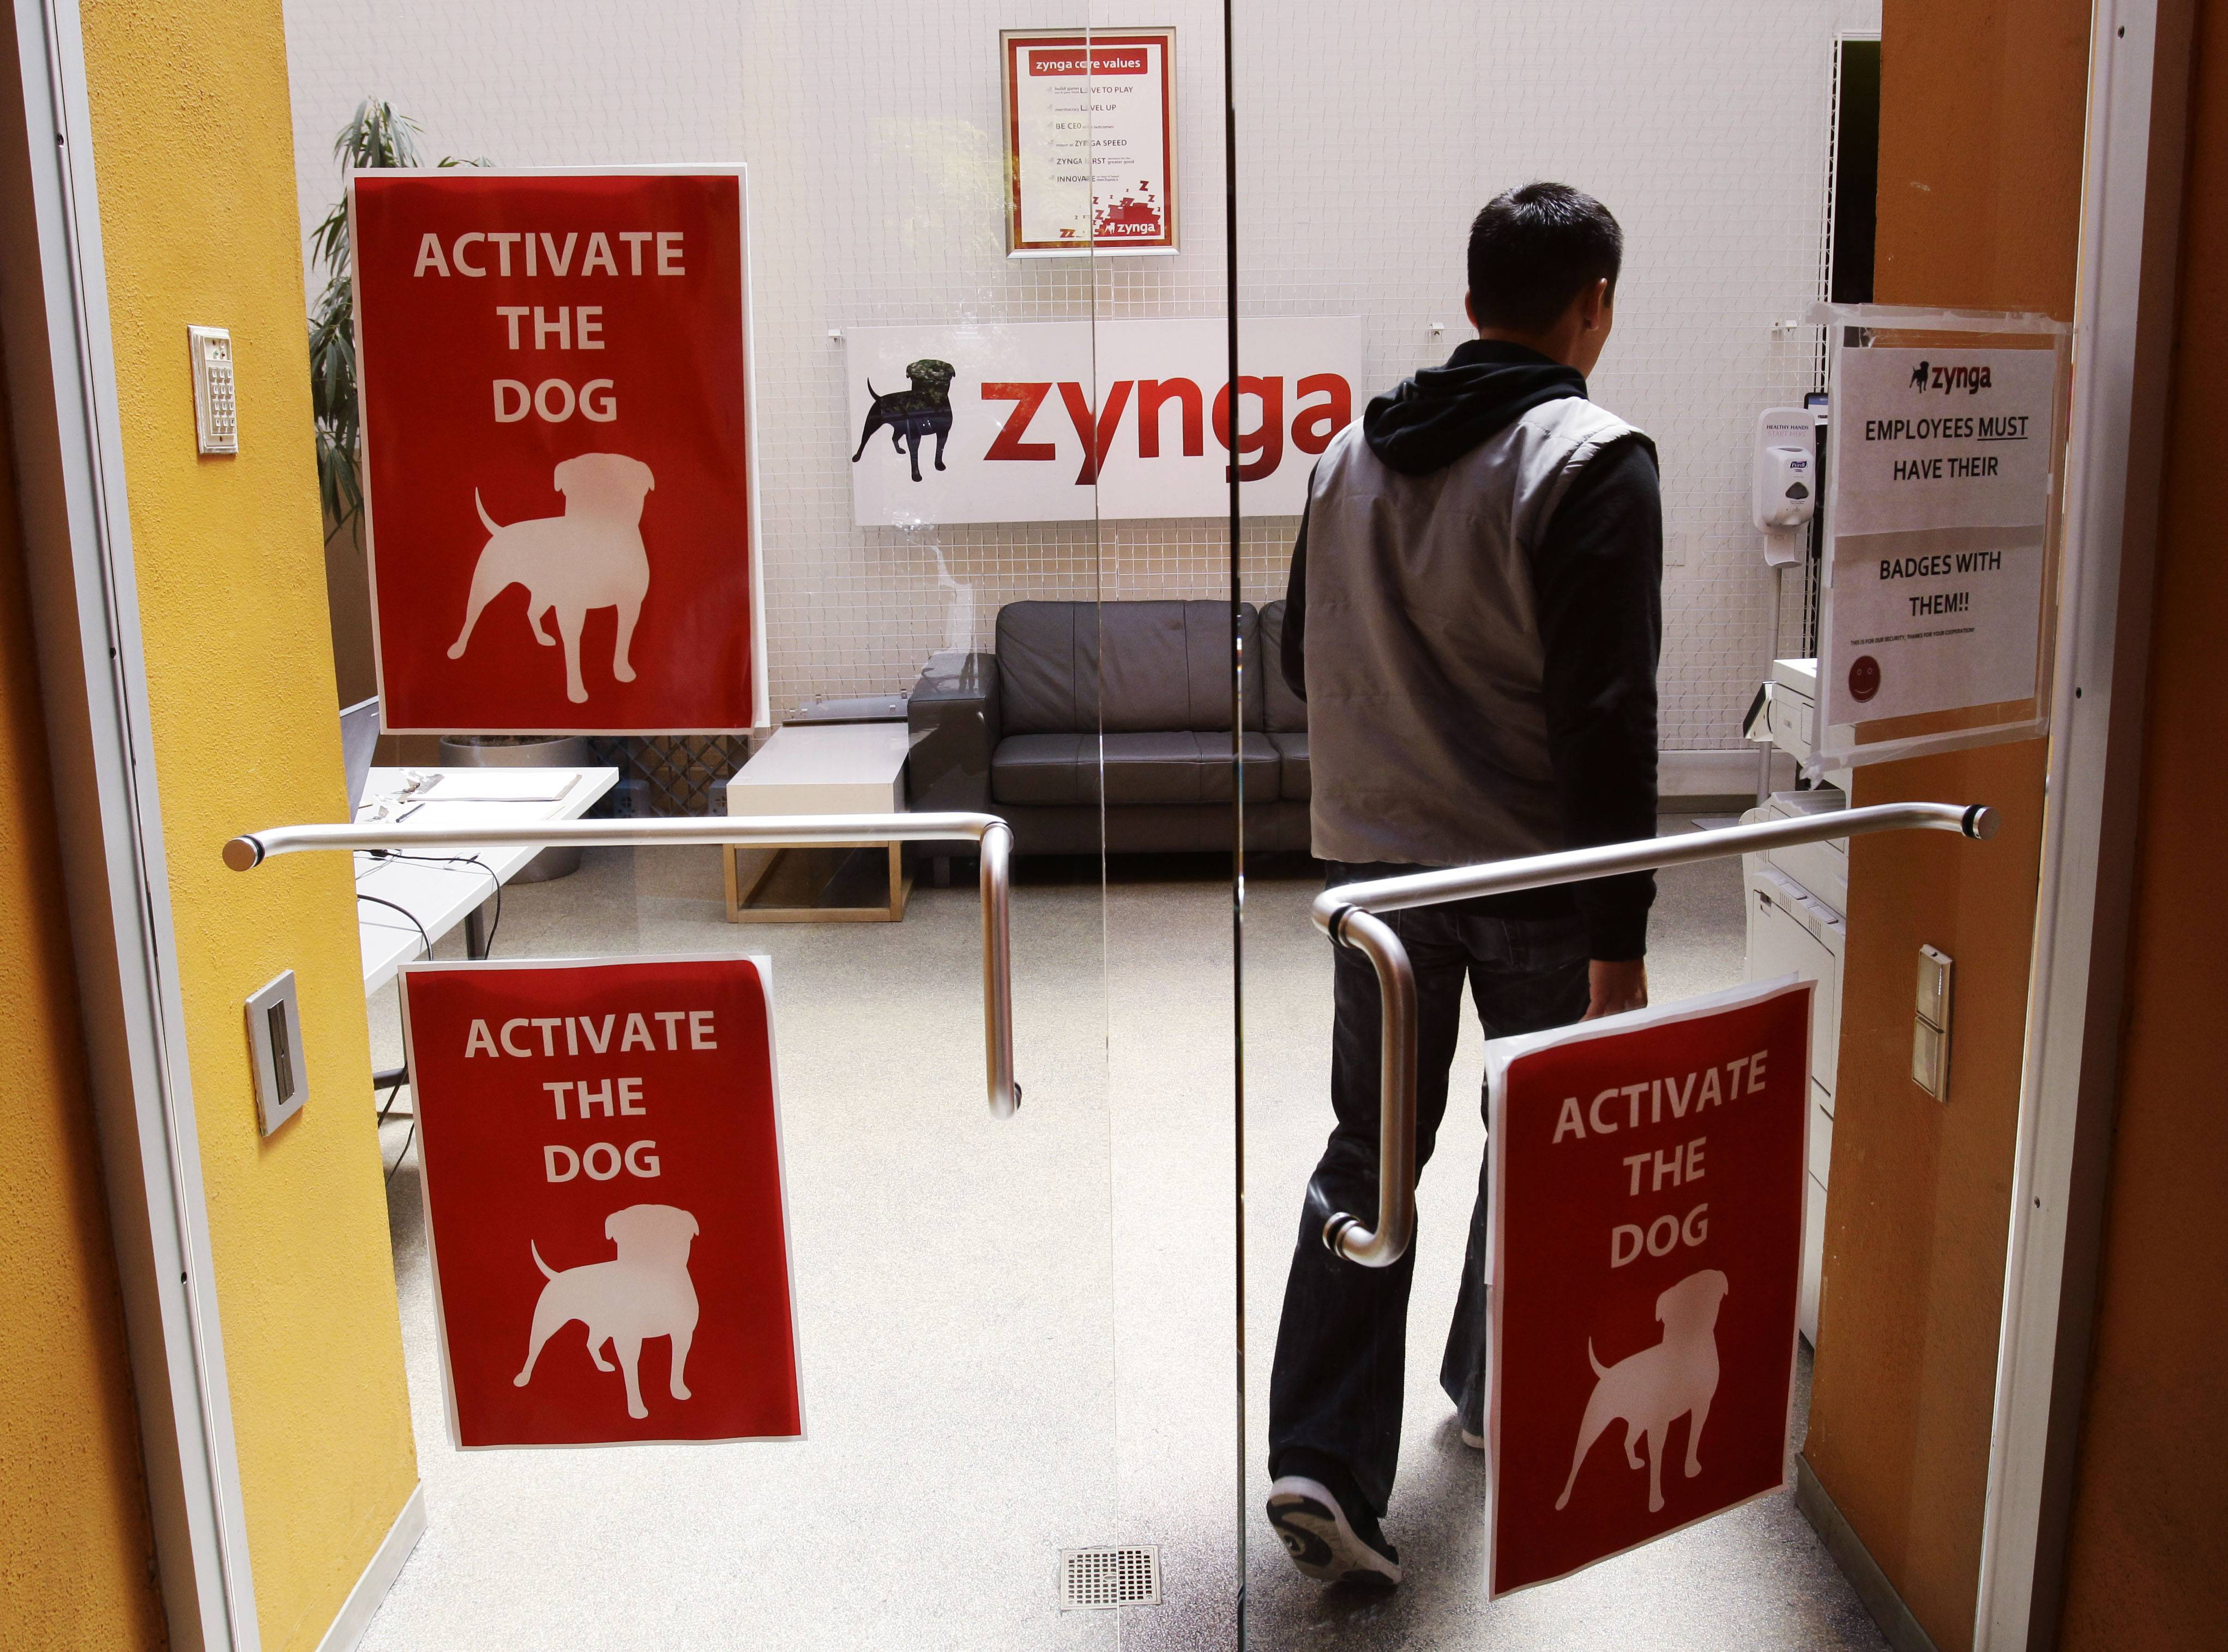 Zynga Inc. hopes to raise up to $1 billion in an initial public offering that follows LinkedIn's sizzling stock market debut last month. The amount of money Zynga is seeking in its IPO will likely change as its bankers determine how many shares should be sold and at what price. That process typically takes three to four months.